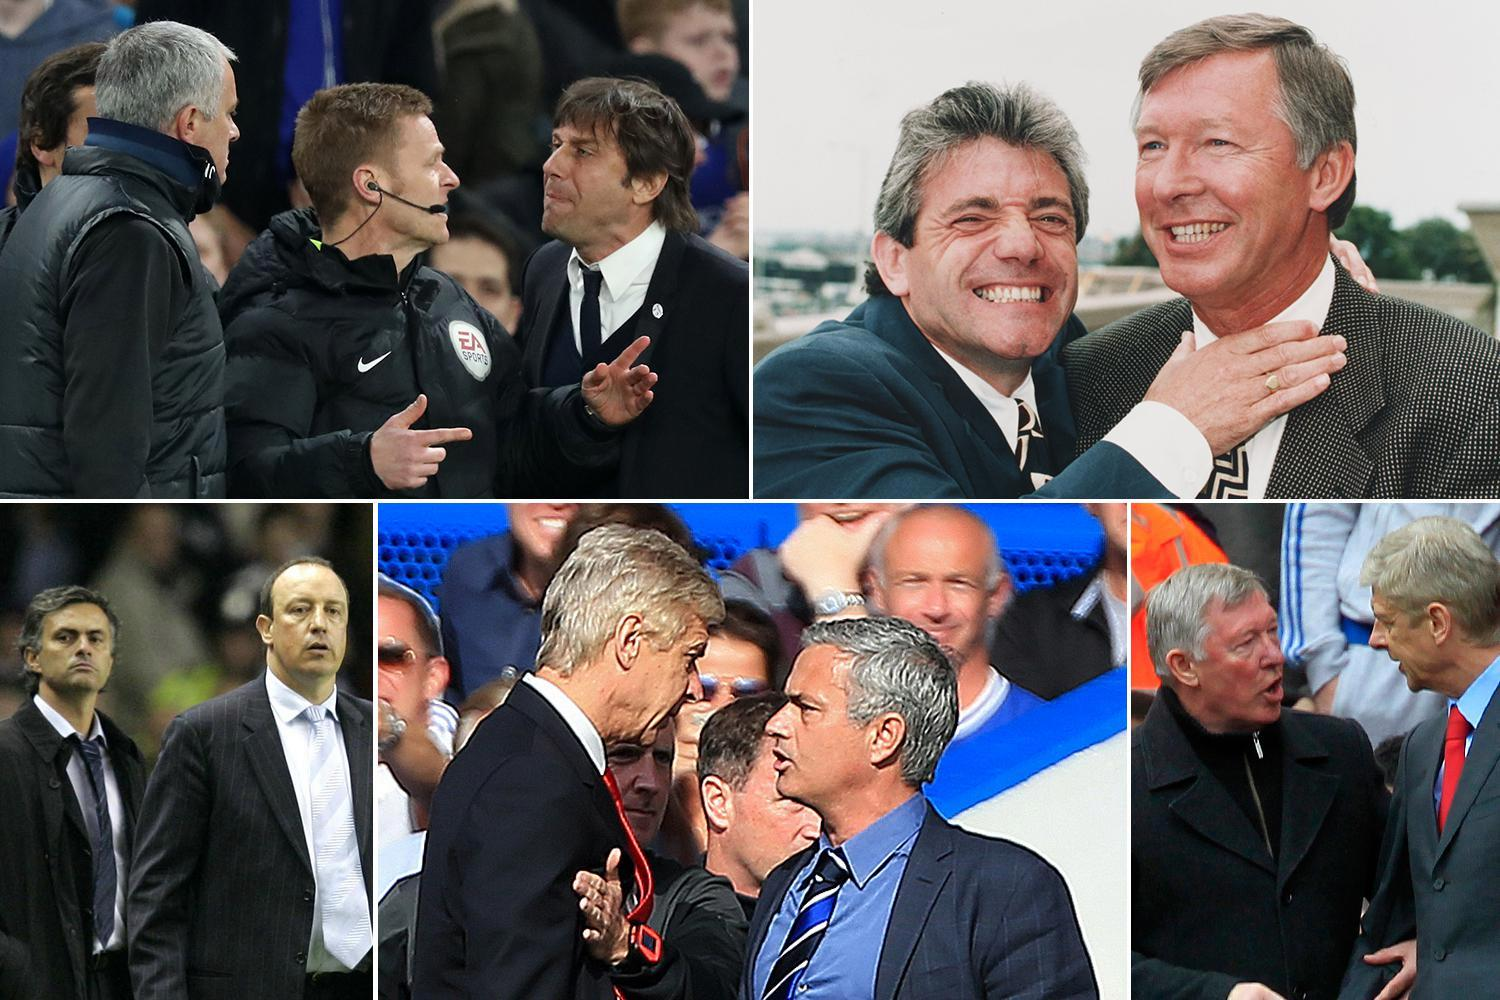 As Jose Mourinho and Antonio Conte continue to argue, we take a look at some of the most incredible managerial feuds